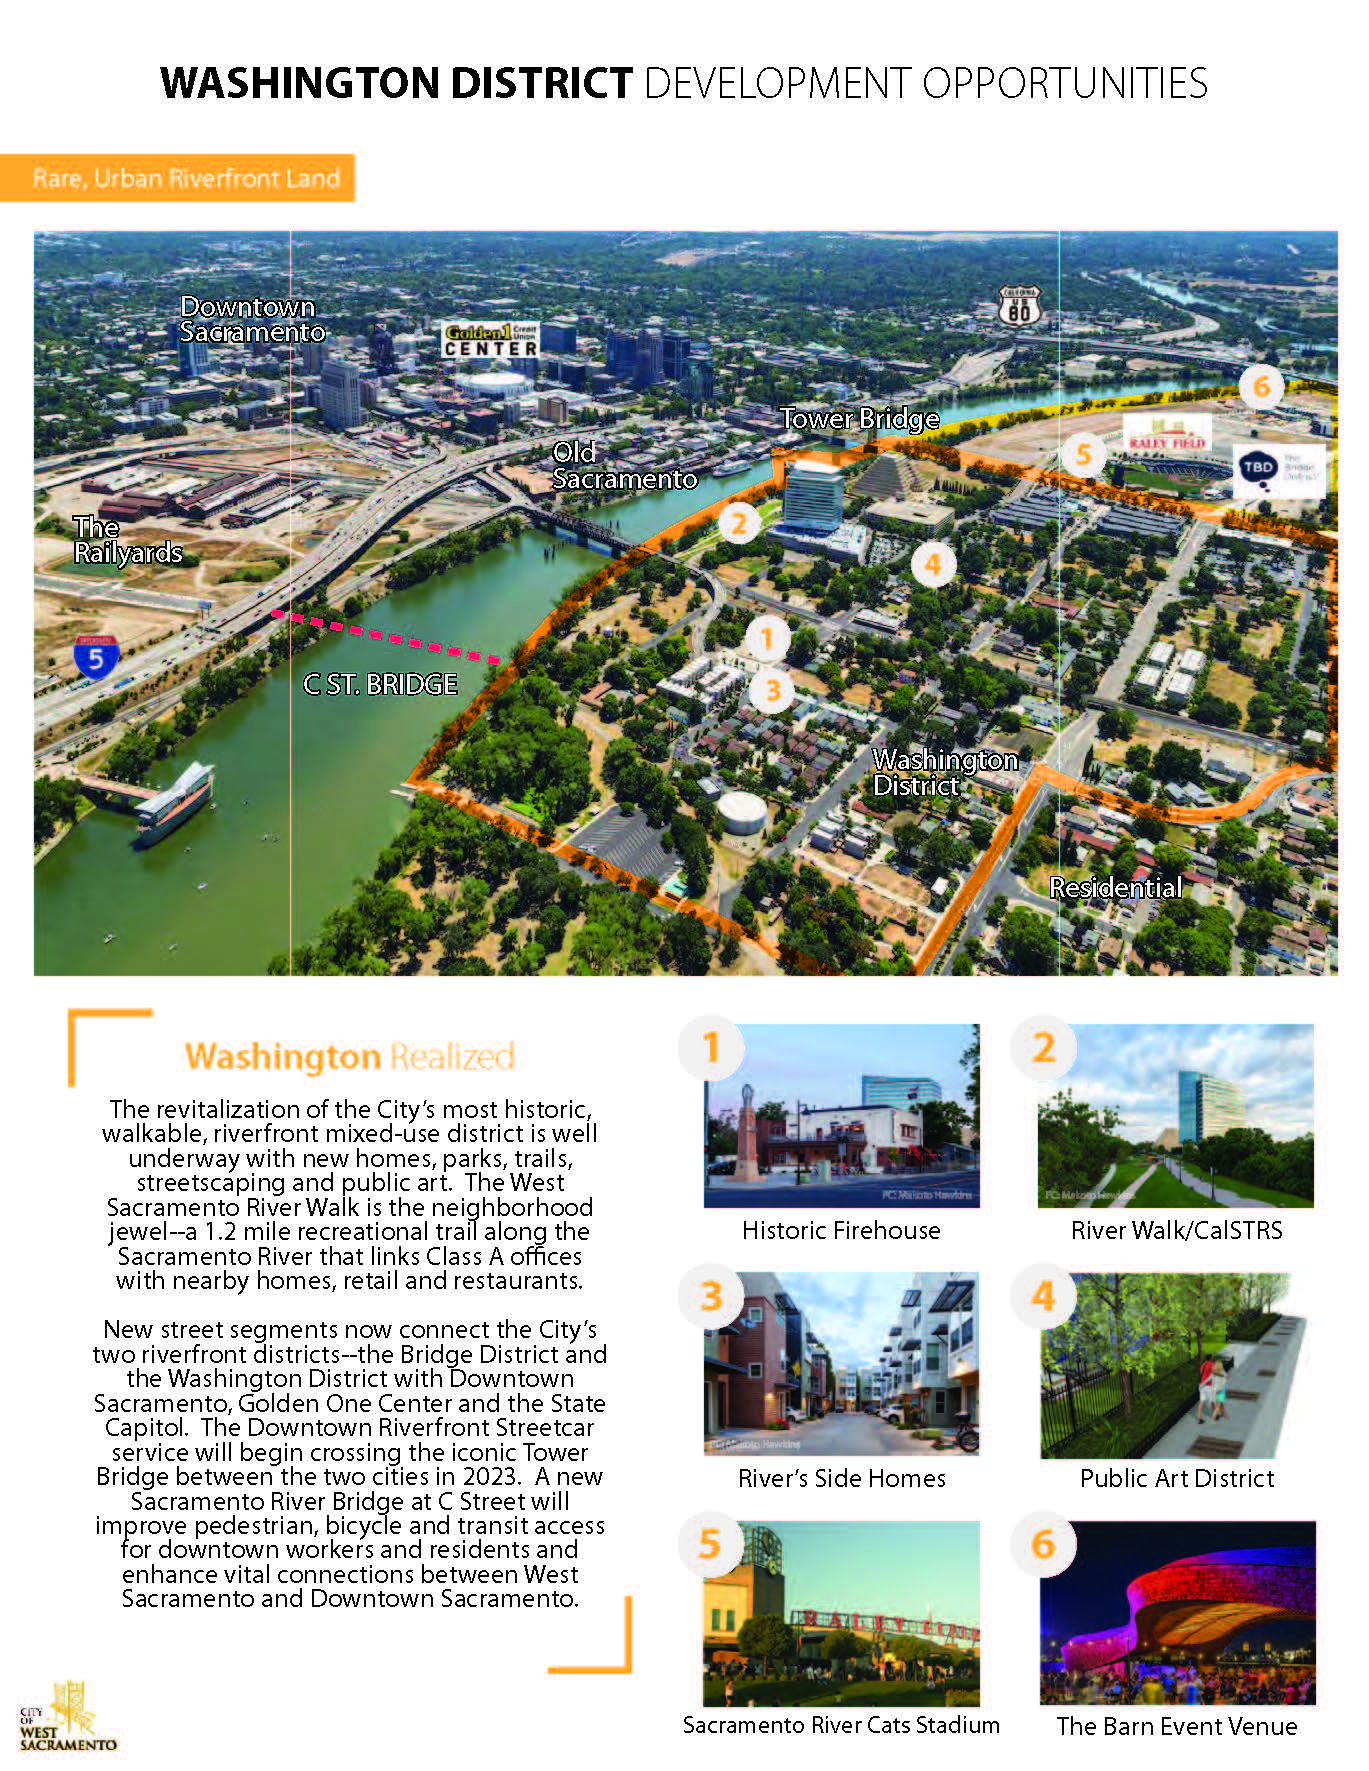 Washington District Development Opportunities West Sacramento1_Page_1